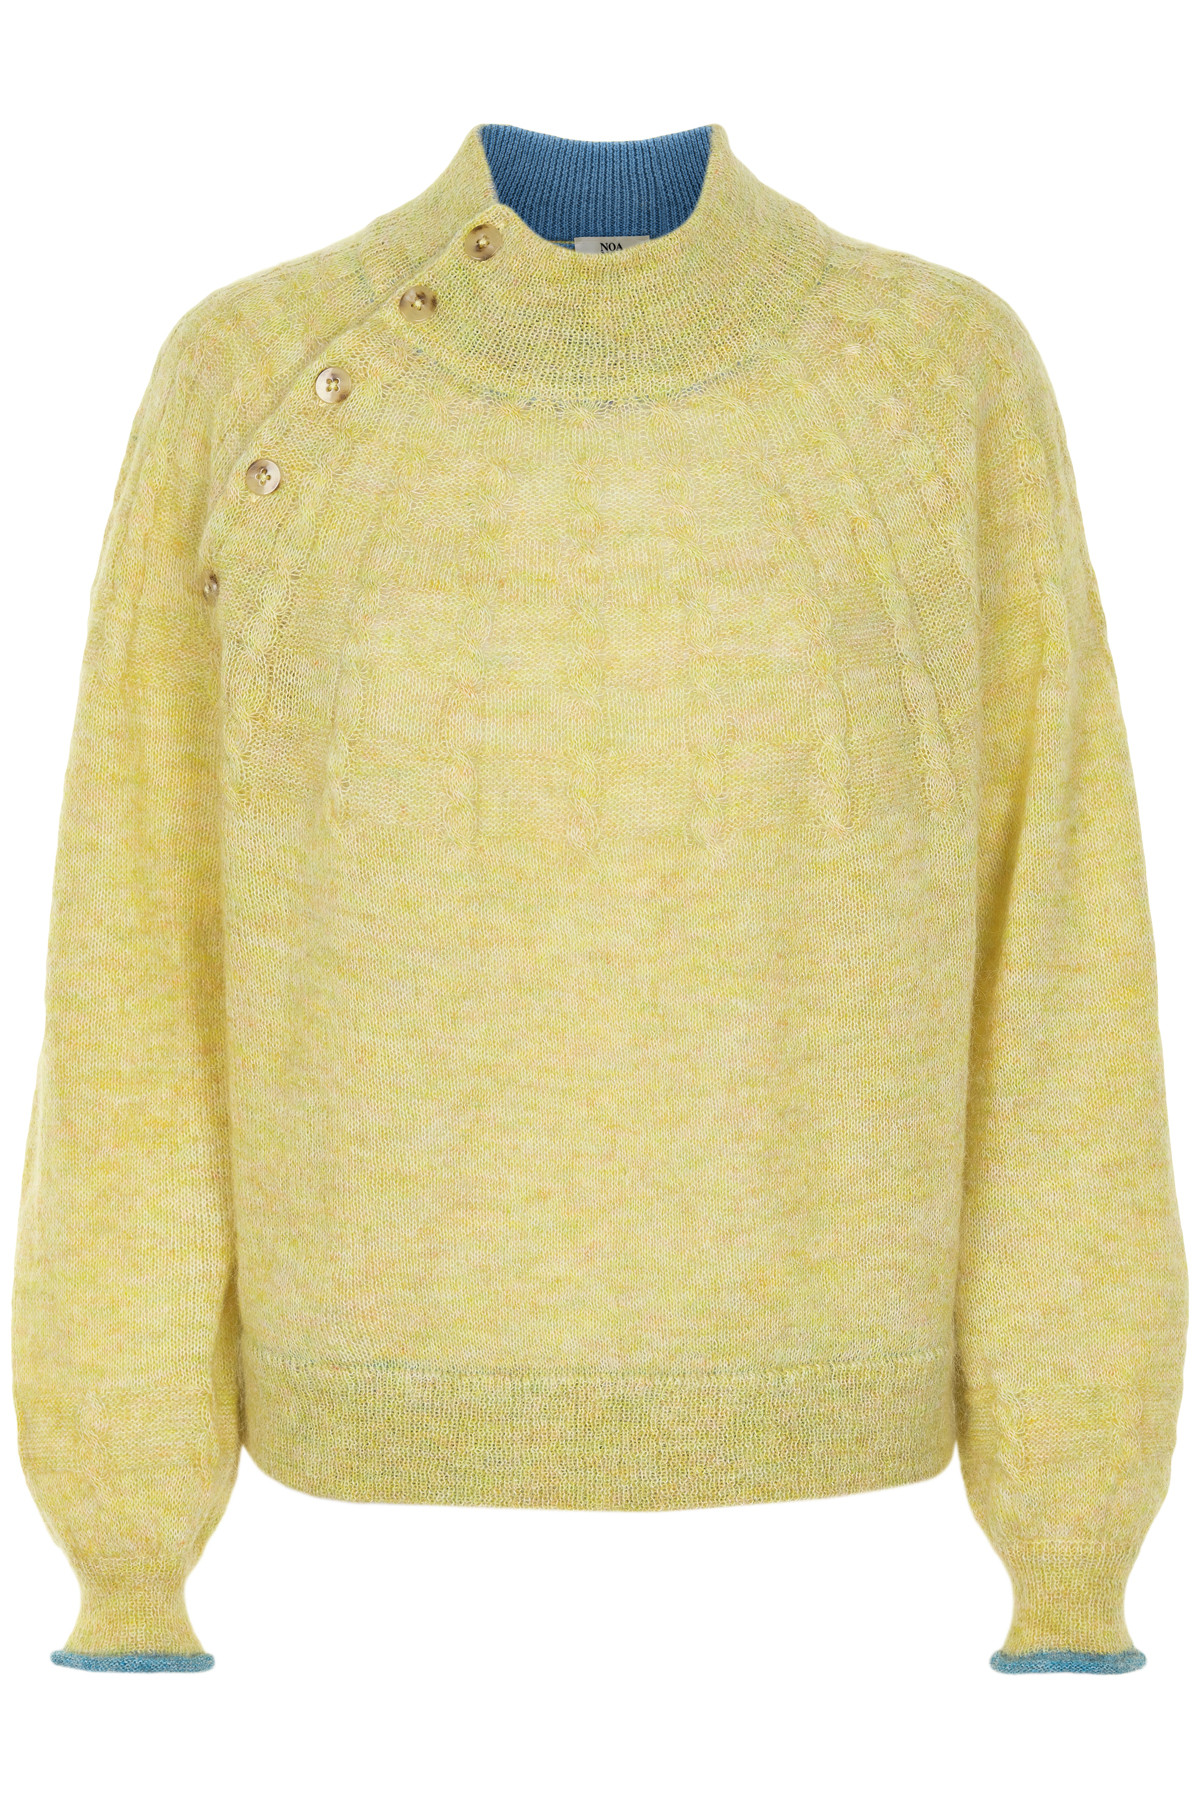 Image of   NOA NOA PULLOVER 1-9614-1 001027 (Yellow, M)